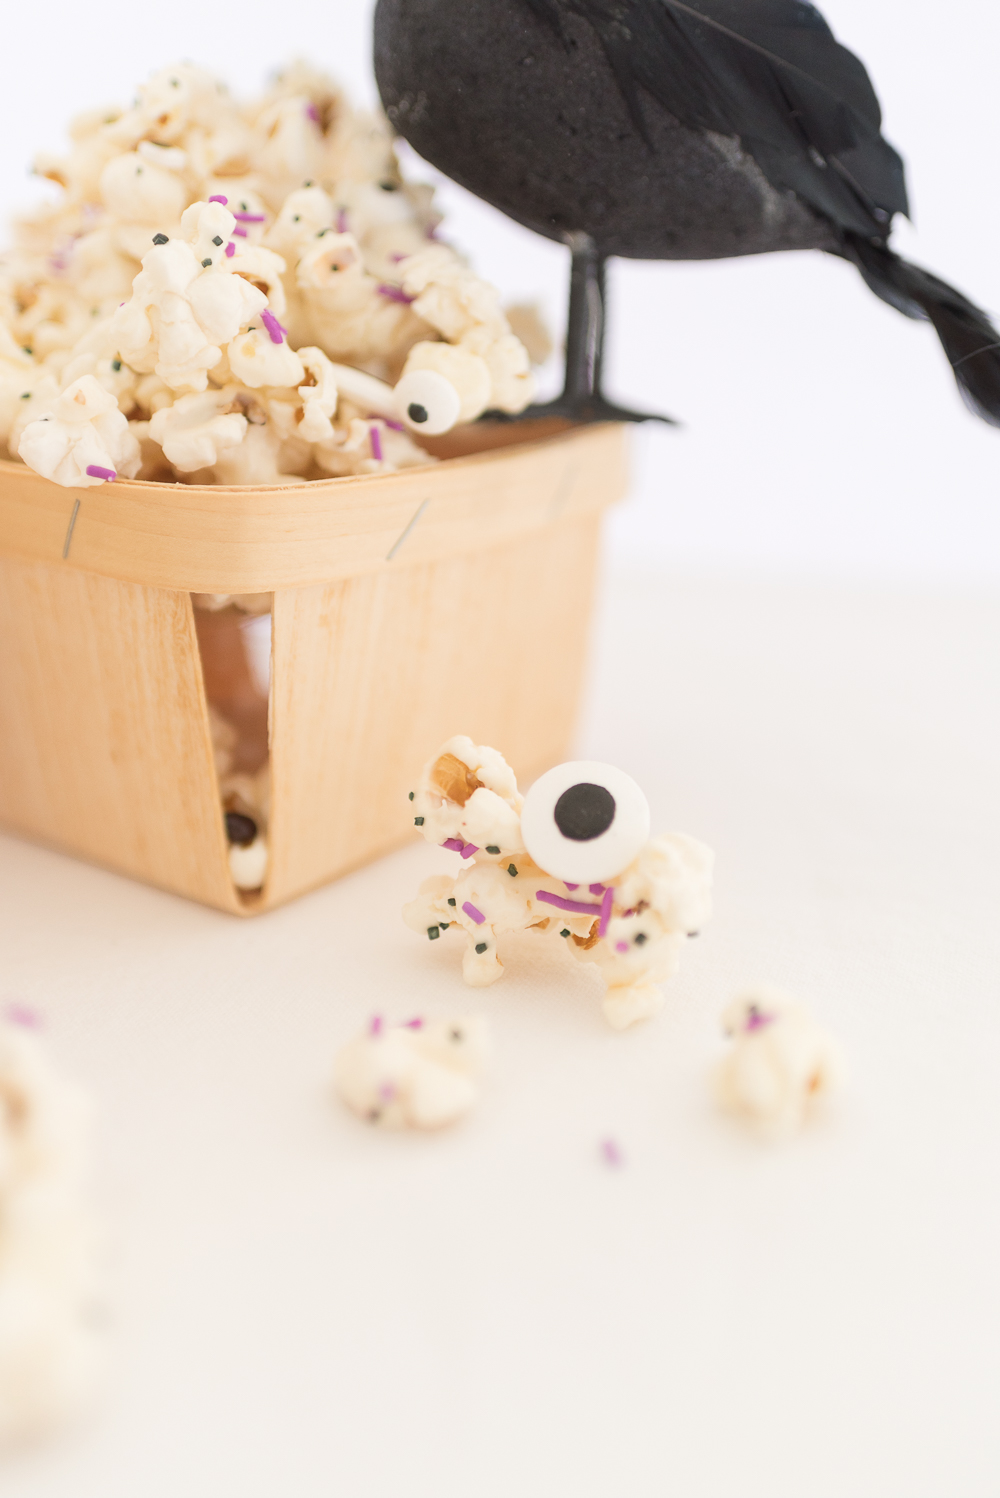 Halloween Monster popcorn drizzled in melted white chocolate and mixed with sprinkles and candy eyeballs